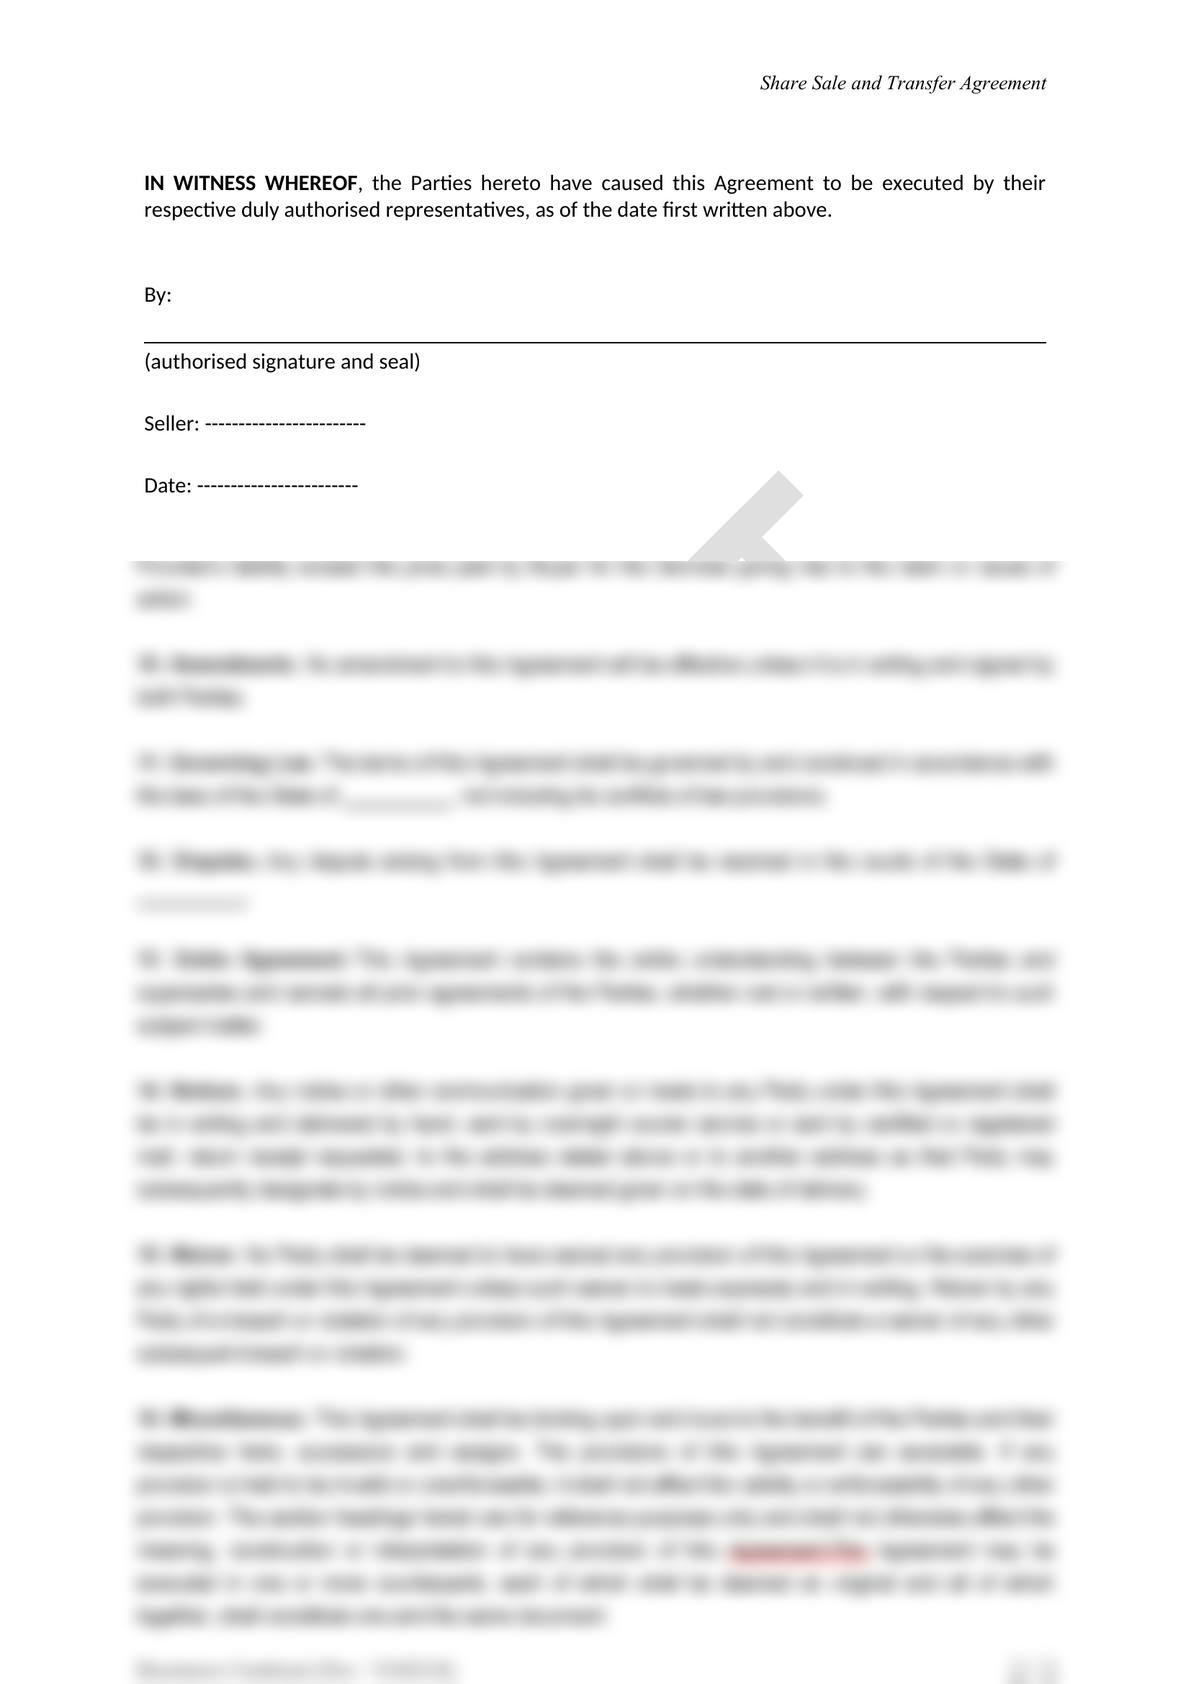 Share Sale and Purchase Agreement in Mongolia-6